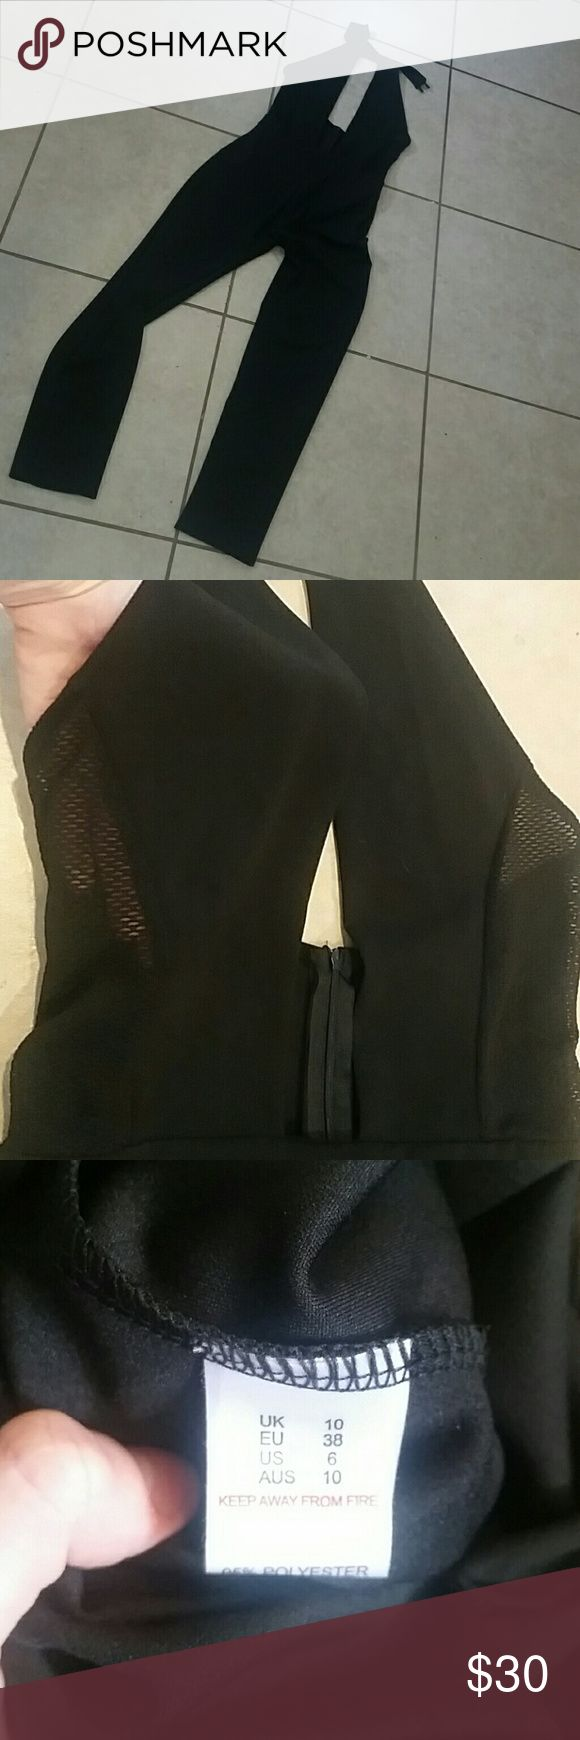 Misguided black turtle neck romper Misguided black size 6 romper with mesh side detail on the top, deep V neck front, turtle neck top with buttons and open back. Zipper in the back. Never worn missing tags. misguided  Pants